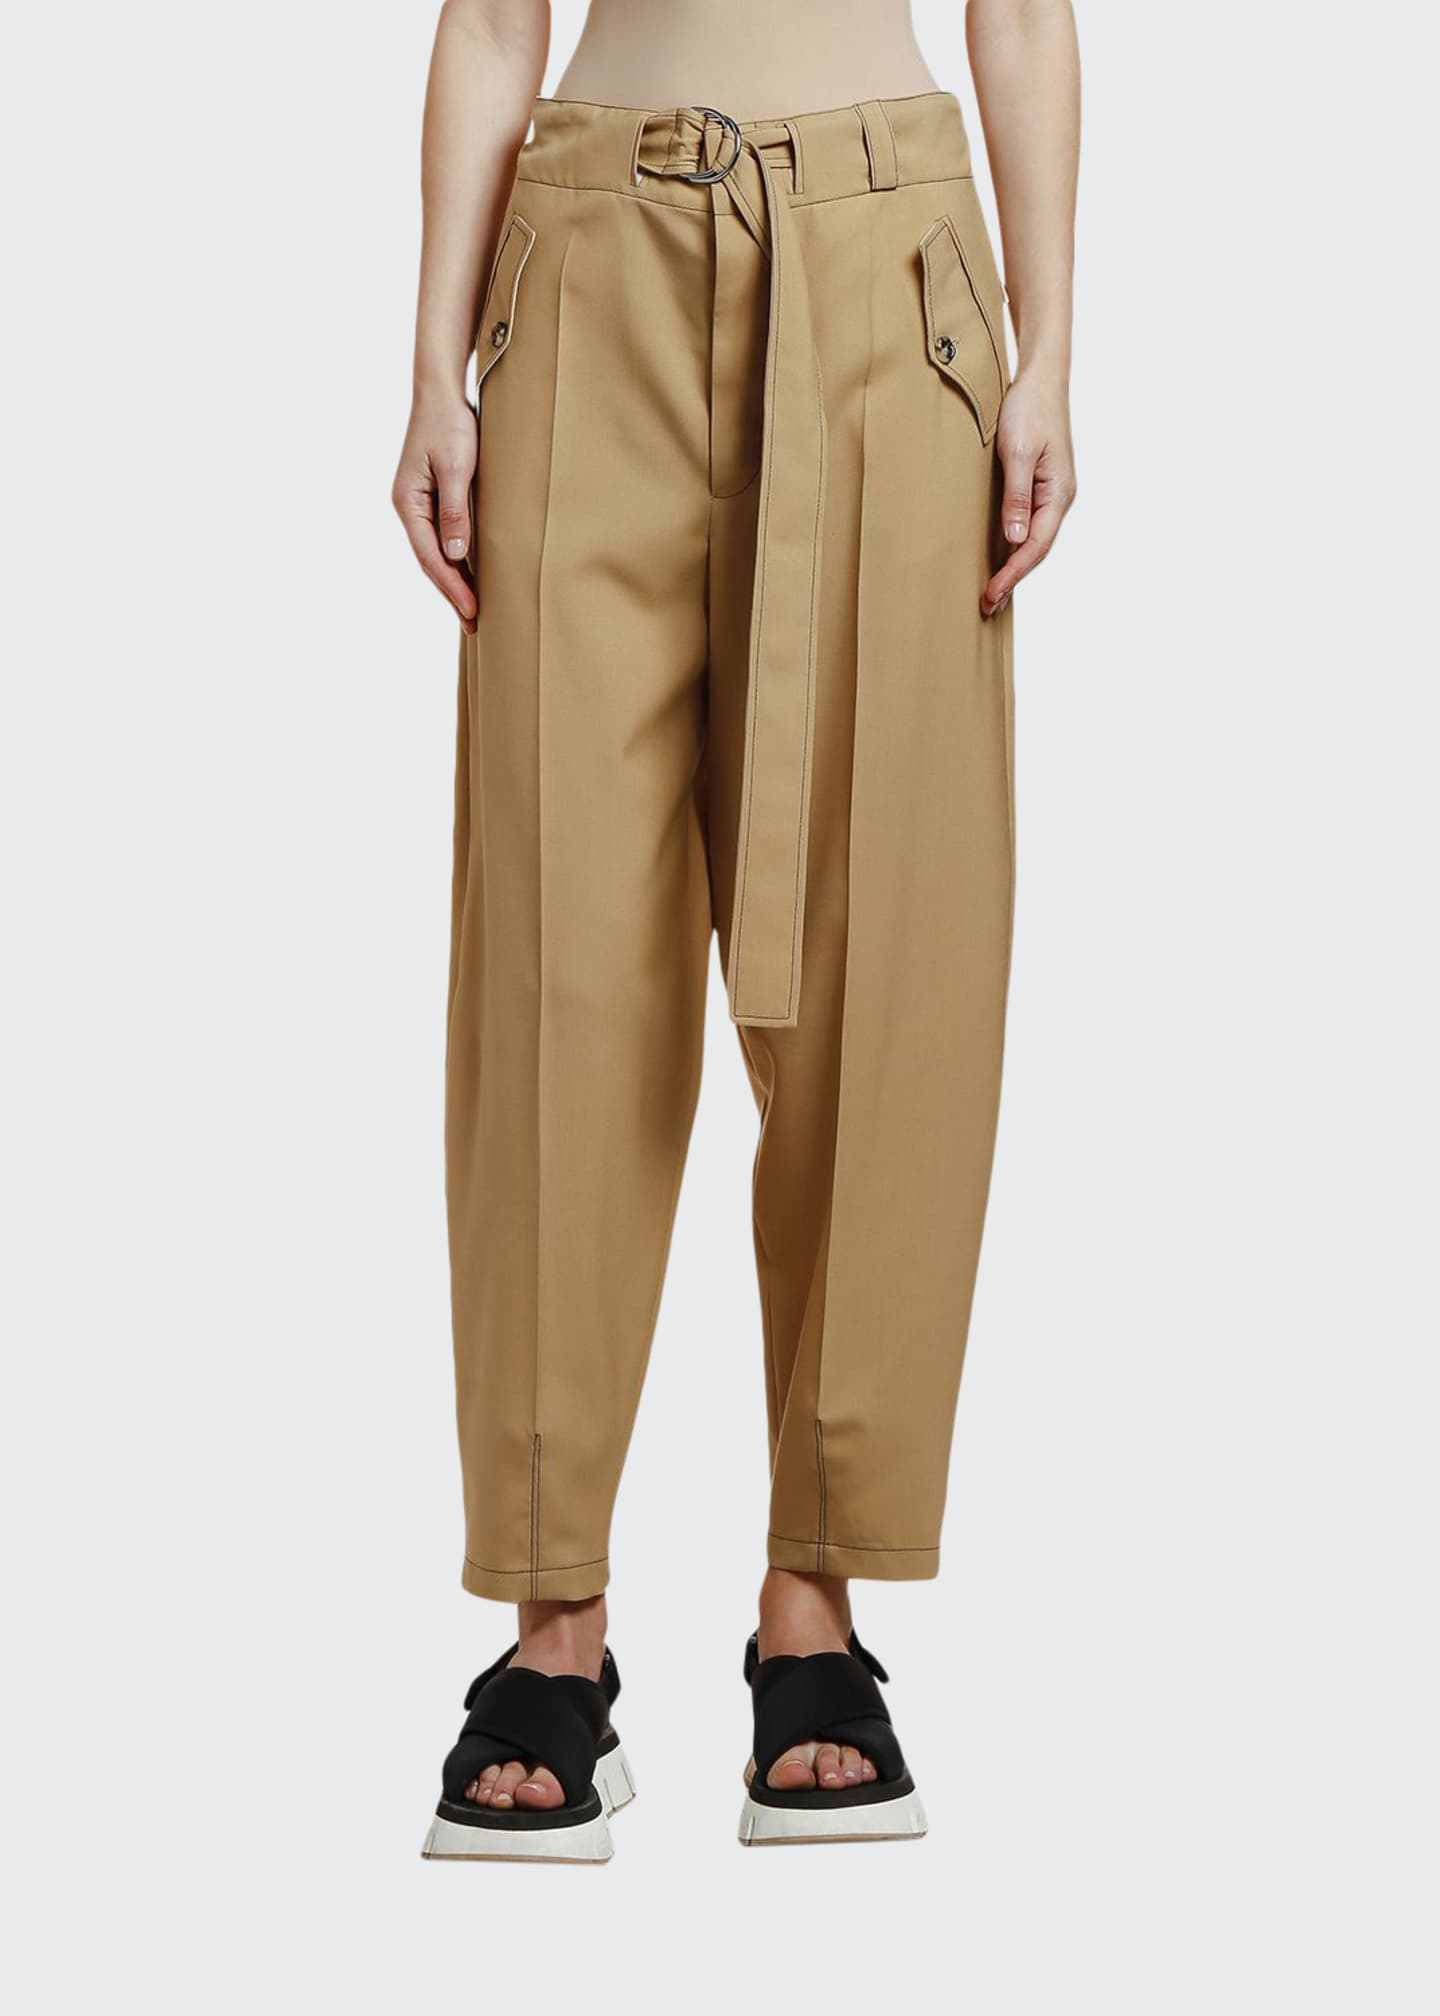 Marni Belted Wool Utility Trousers